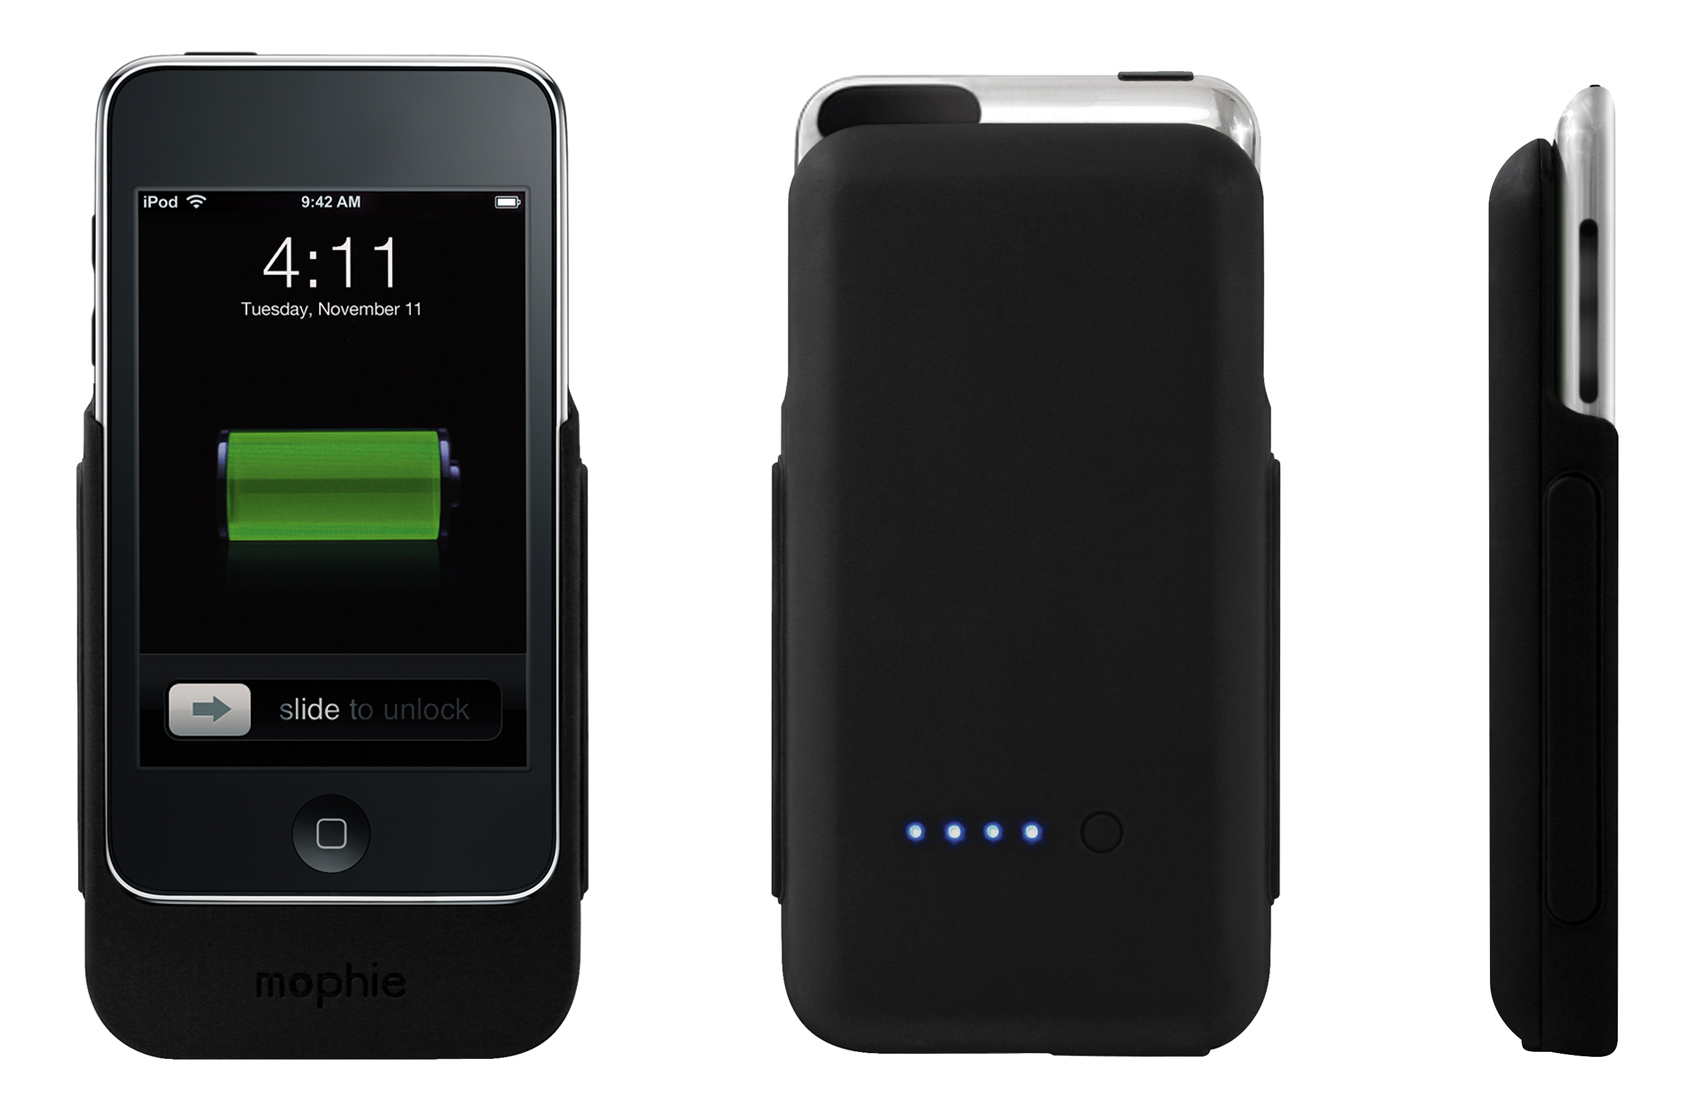 mophie Juice Pack for iPod touch 2G announced